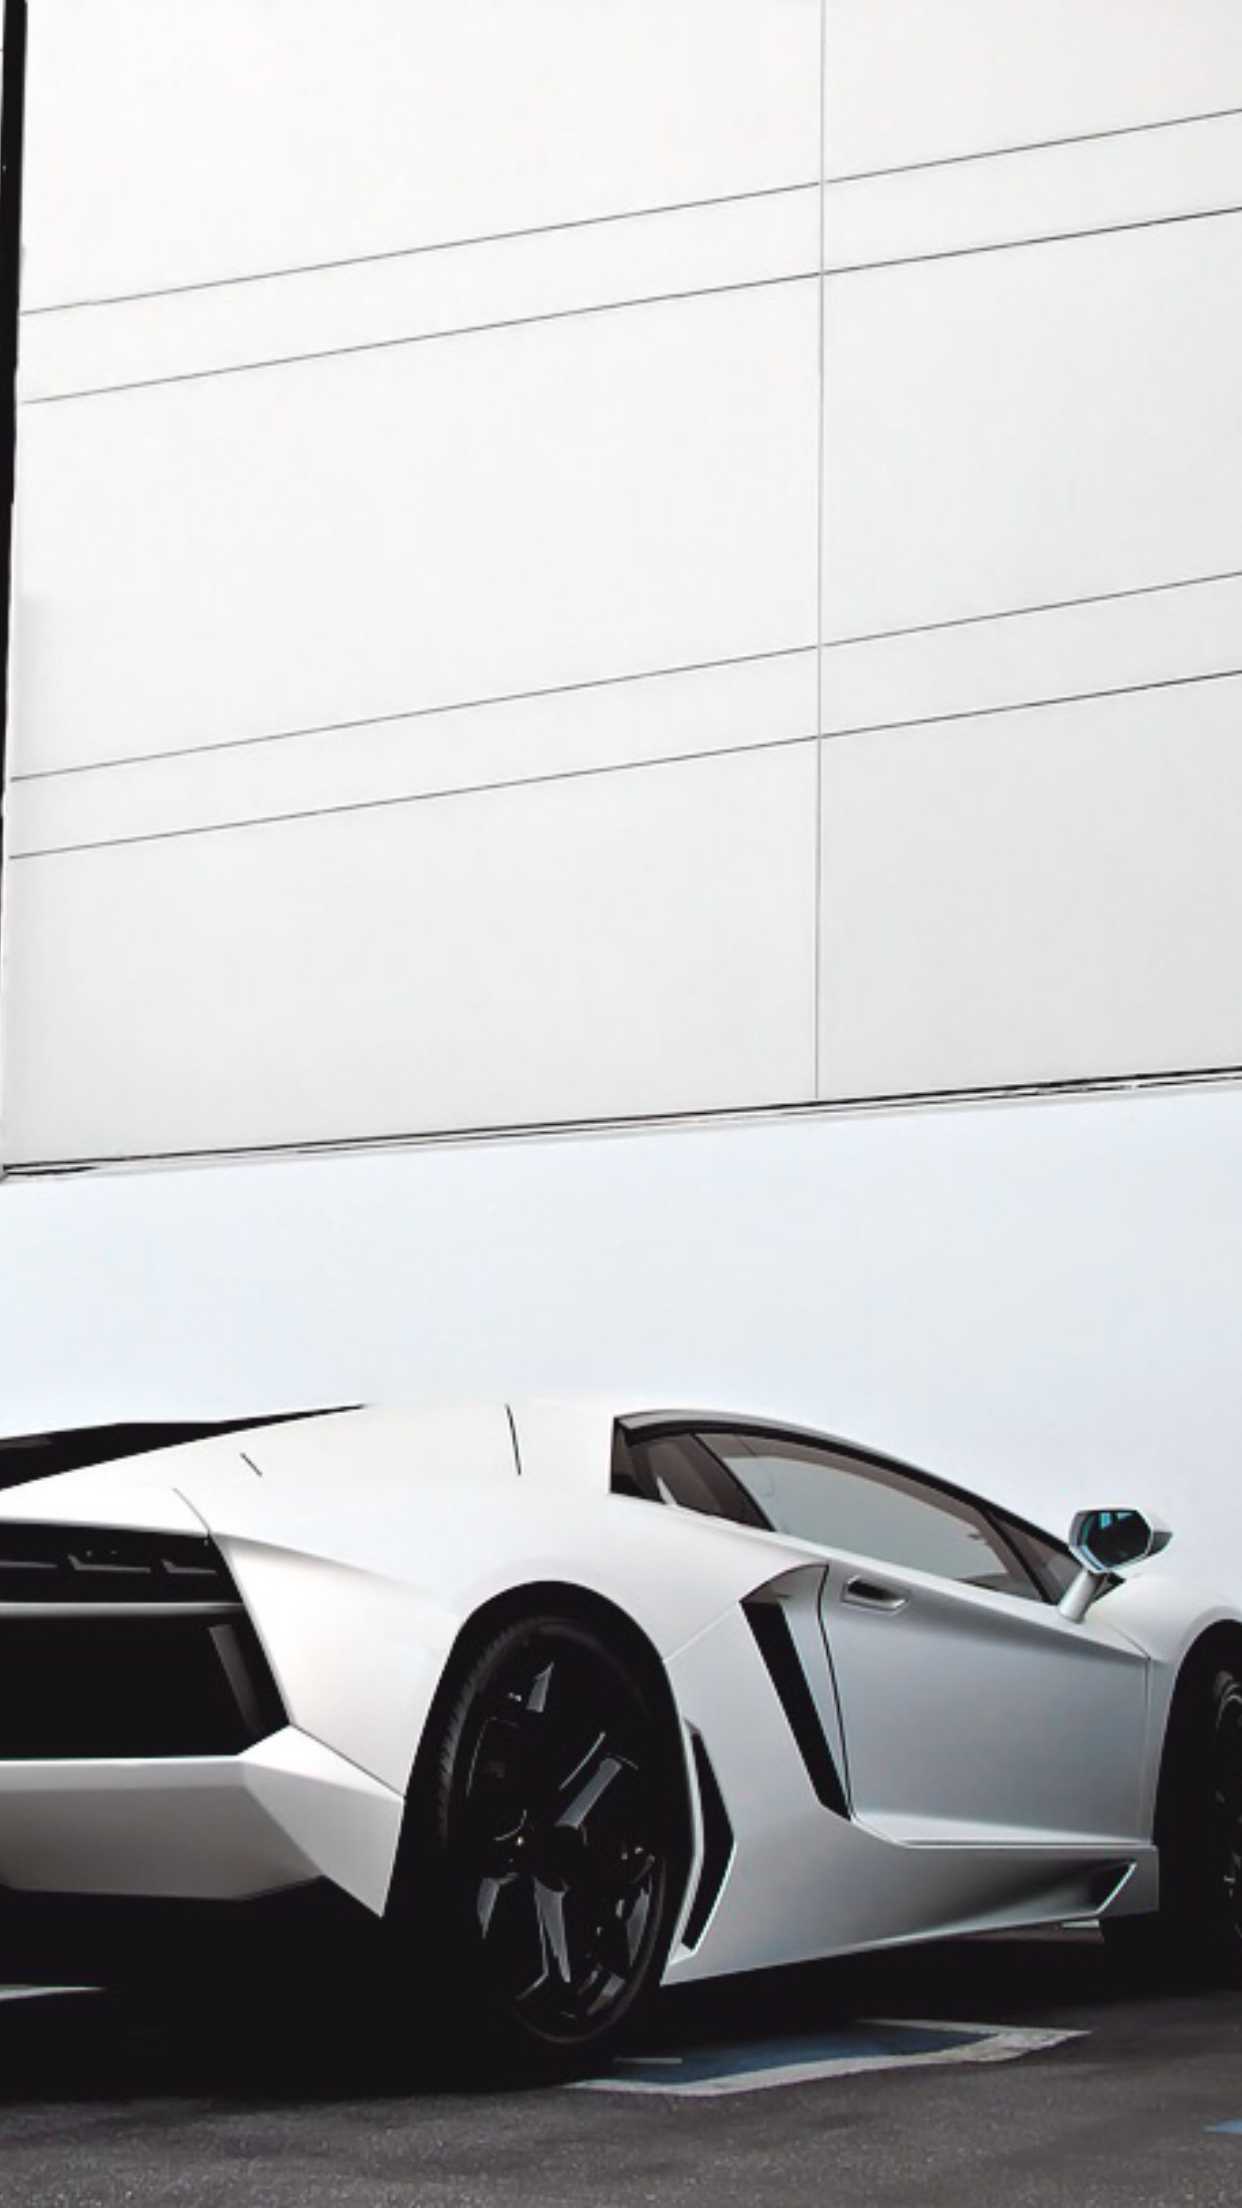 Supercar Lambo white